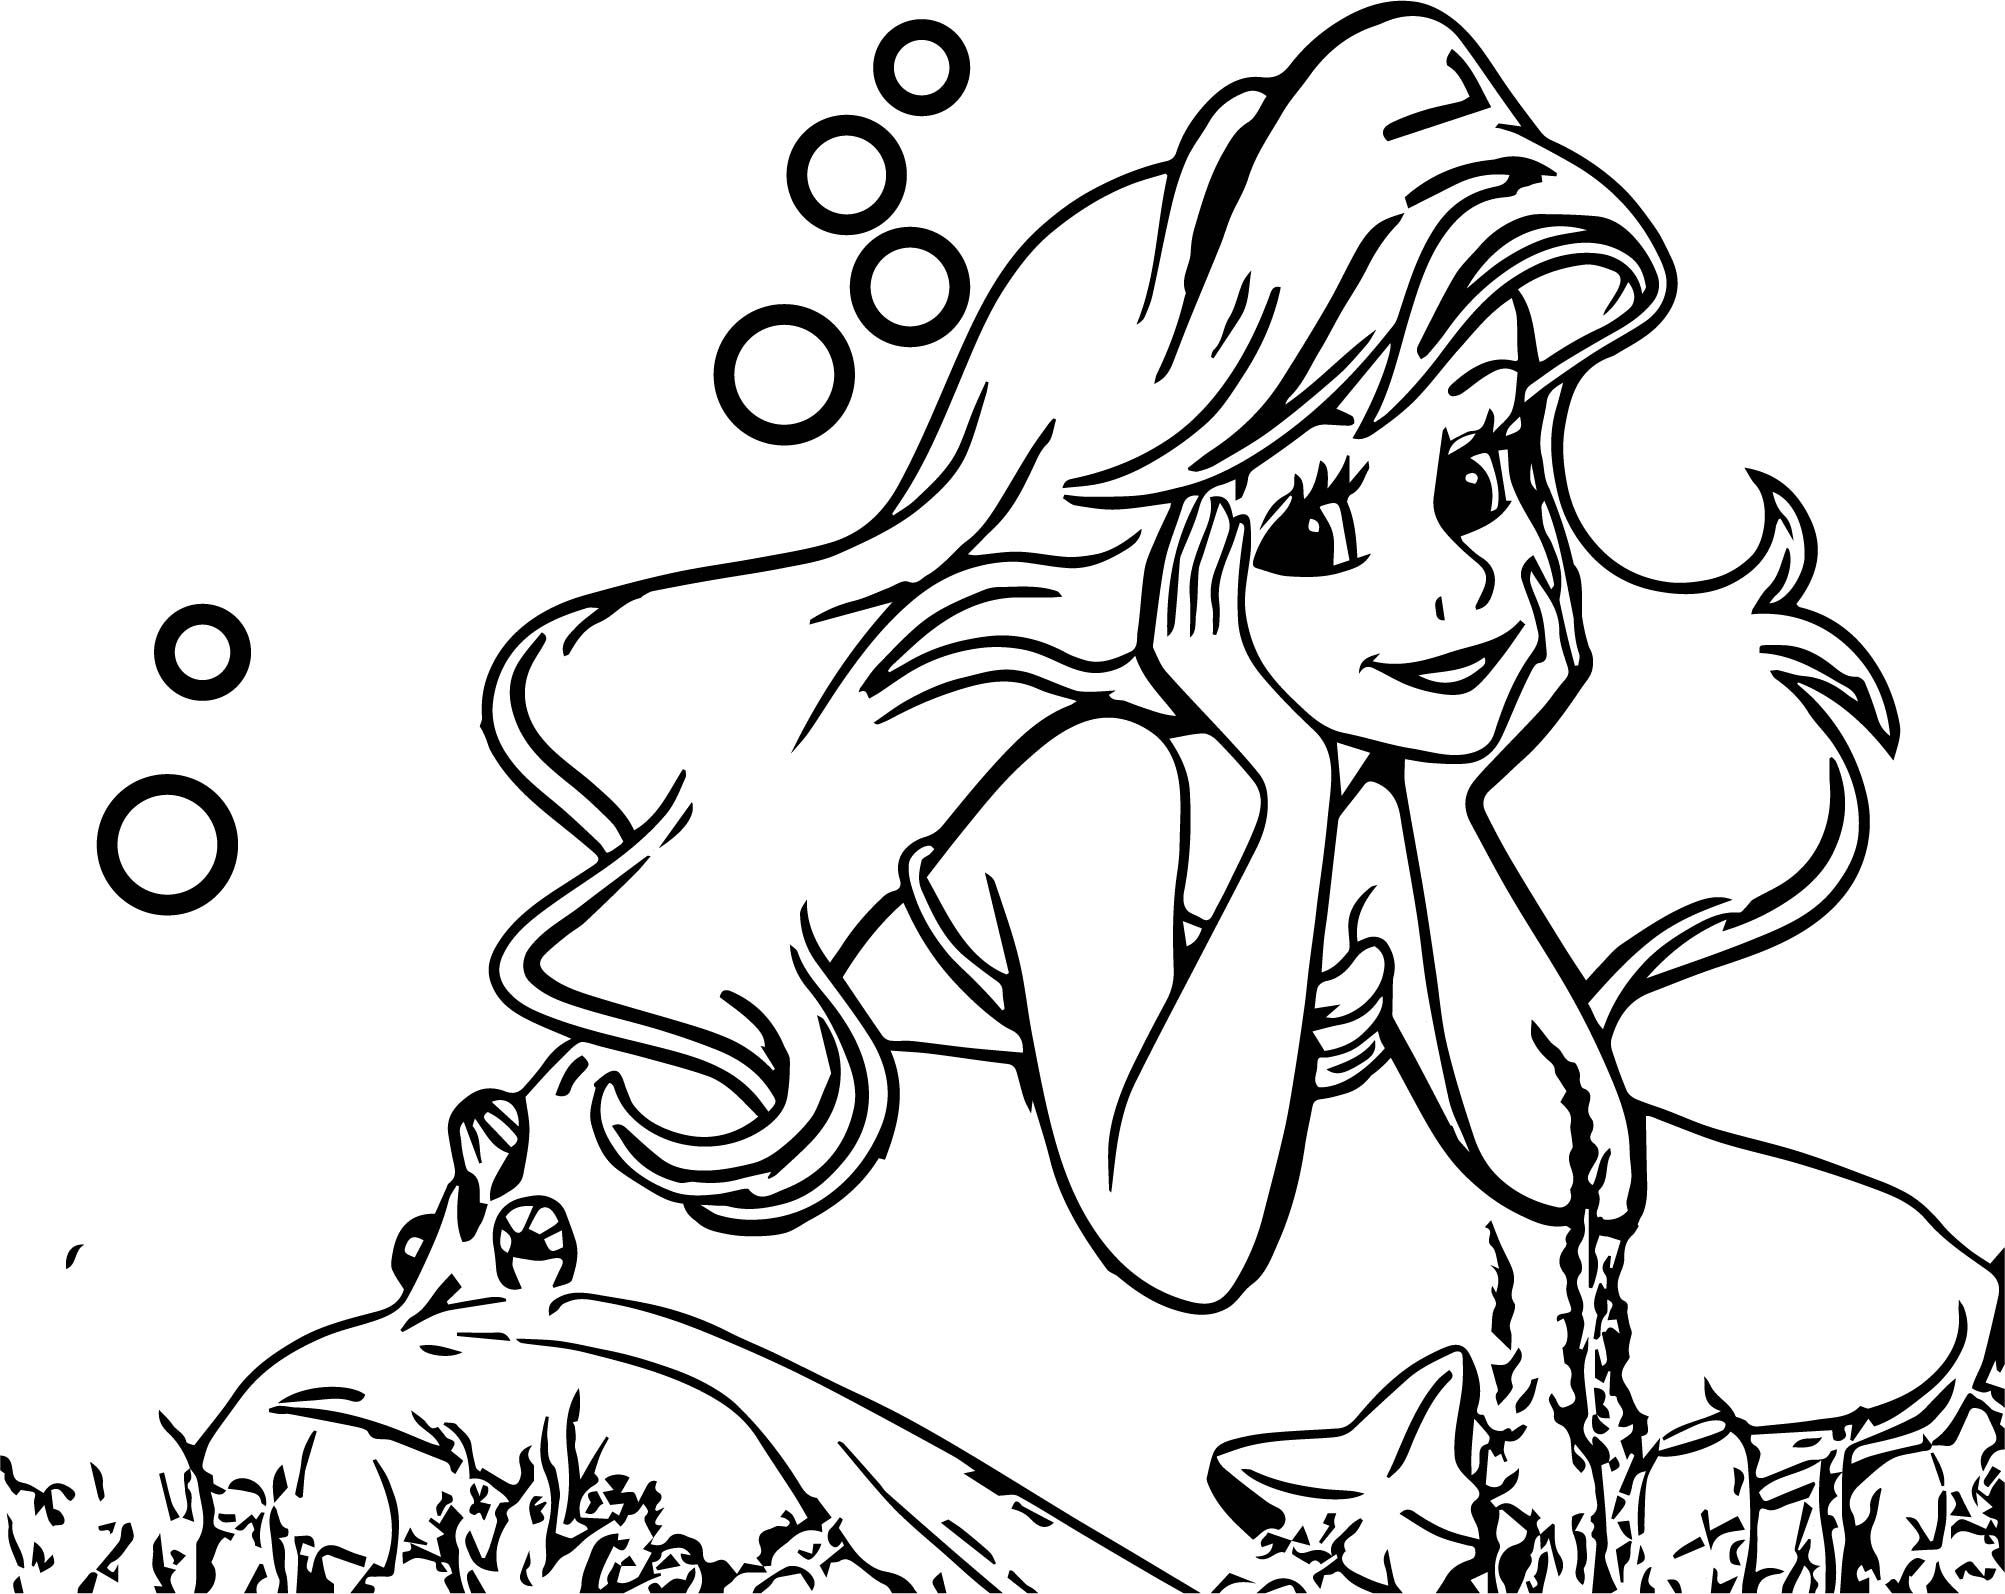 Cute Thinking Ariel Mermaid Coloring Page | Wecoloringpage.com